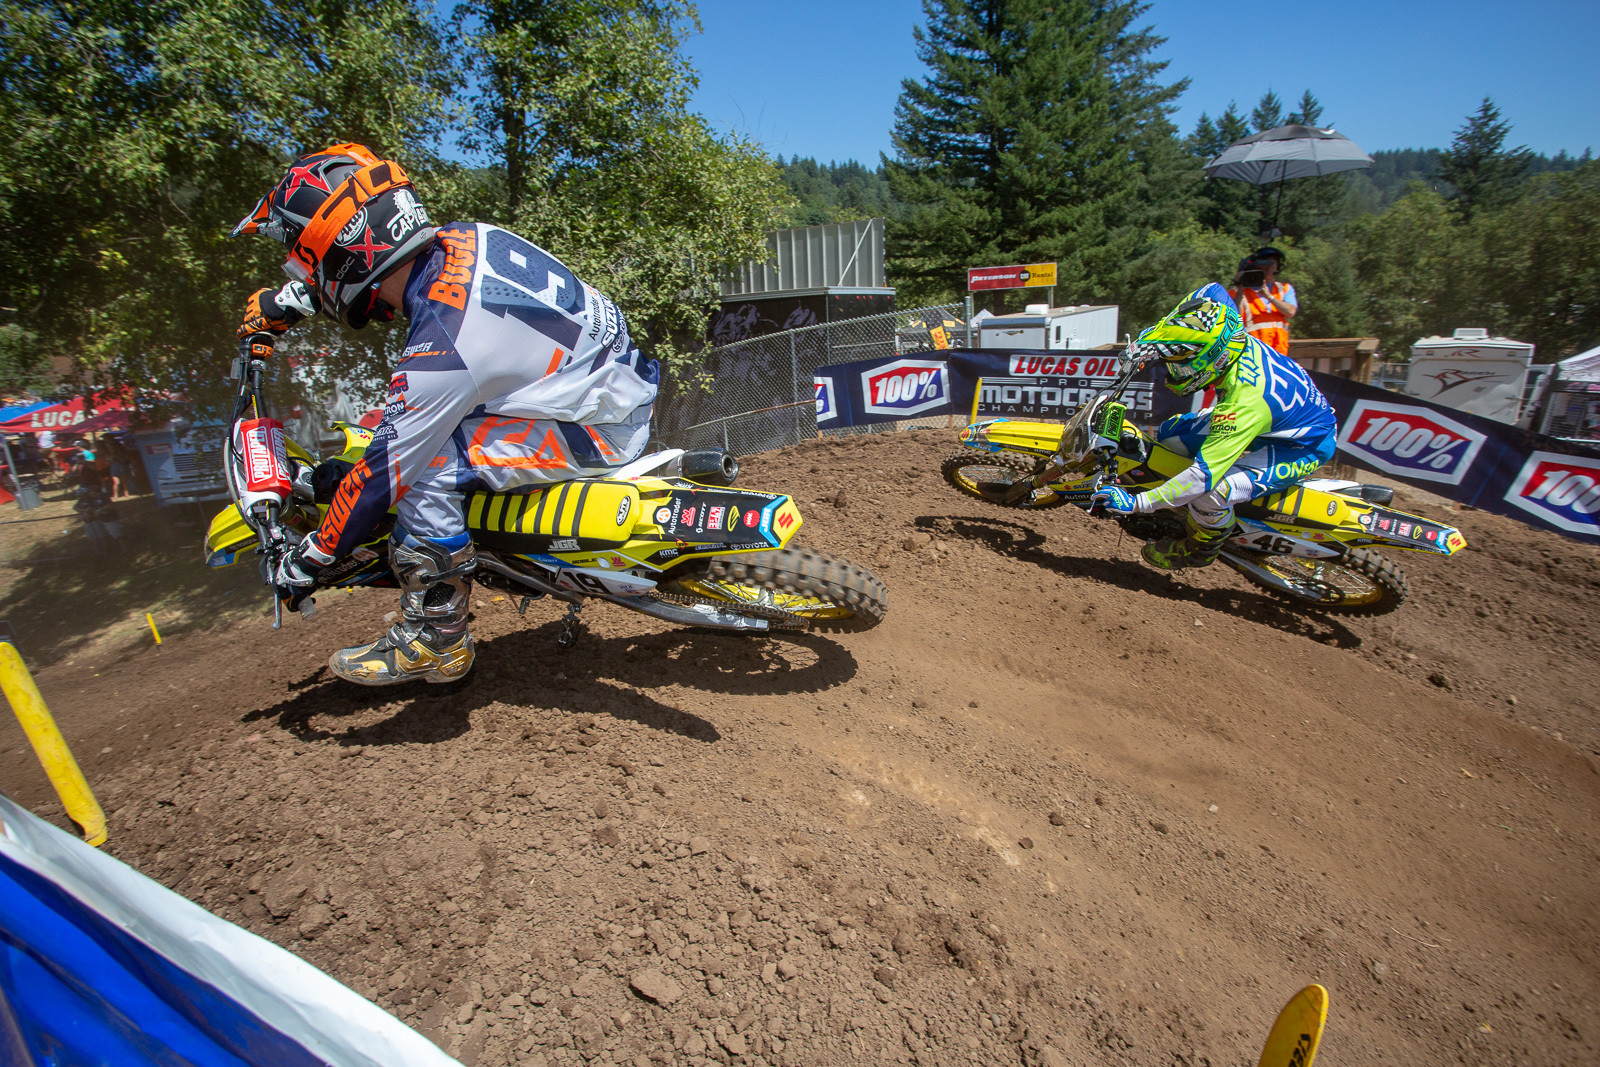 "Justin Bogle may still be struggling to get back up to full speed from his arm injury earlier in the season, but his starts are on lock. We were joking with him before the race about getting great starts at this point was sort of a good news/bad news situation (the good news is that you got the holeshot/the bad news is now you have 39 angry guys behind you), and he said that, ""I have to give myself a chance."" He mentioned before his overall win last year at Budds Creek, that he'd gone 4-10 the week before at Unadilla. You never know when a breakthrough will happen. Justin Hill was also looking for good results at his ""home"" track. Bogle slipped back to 13th, while Hill was fourth in moto one."